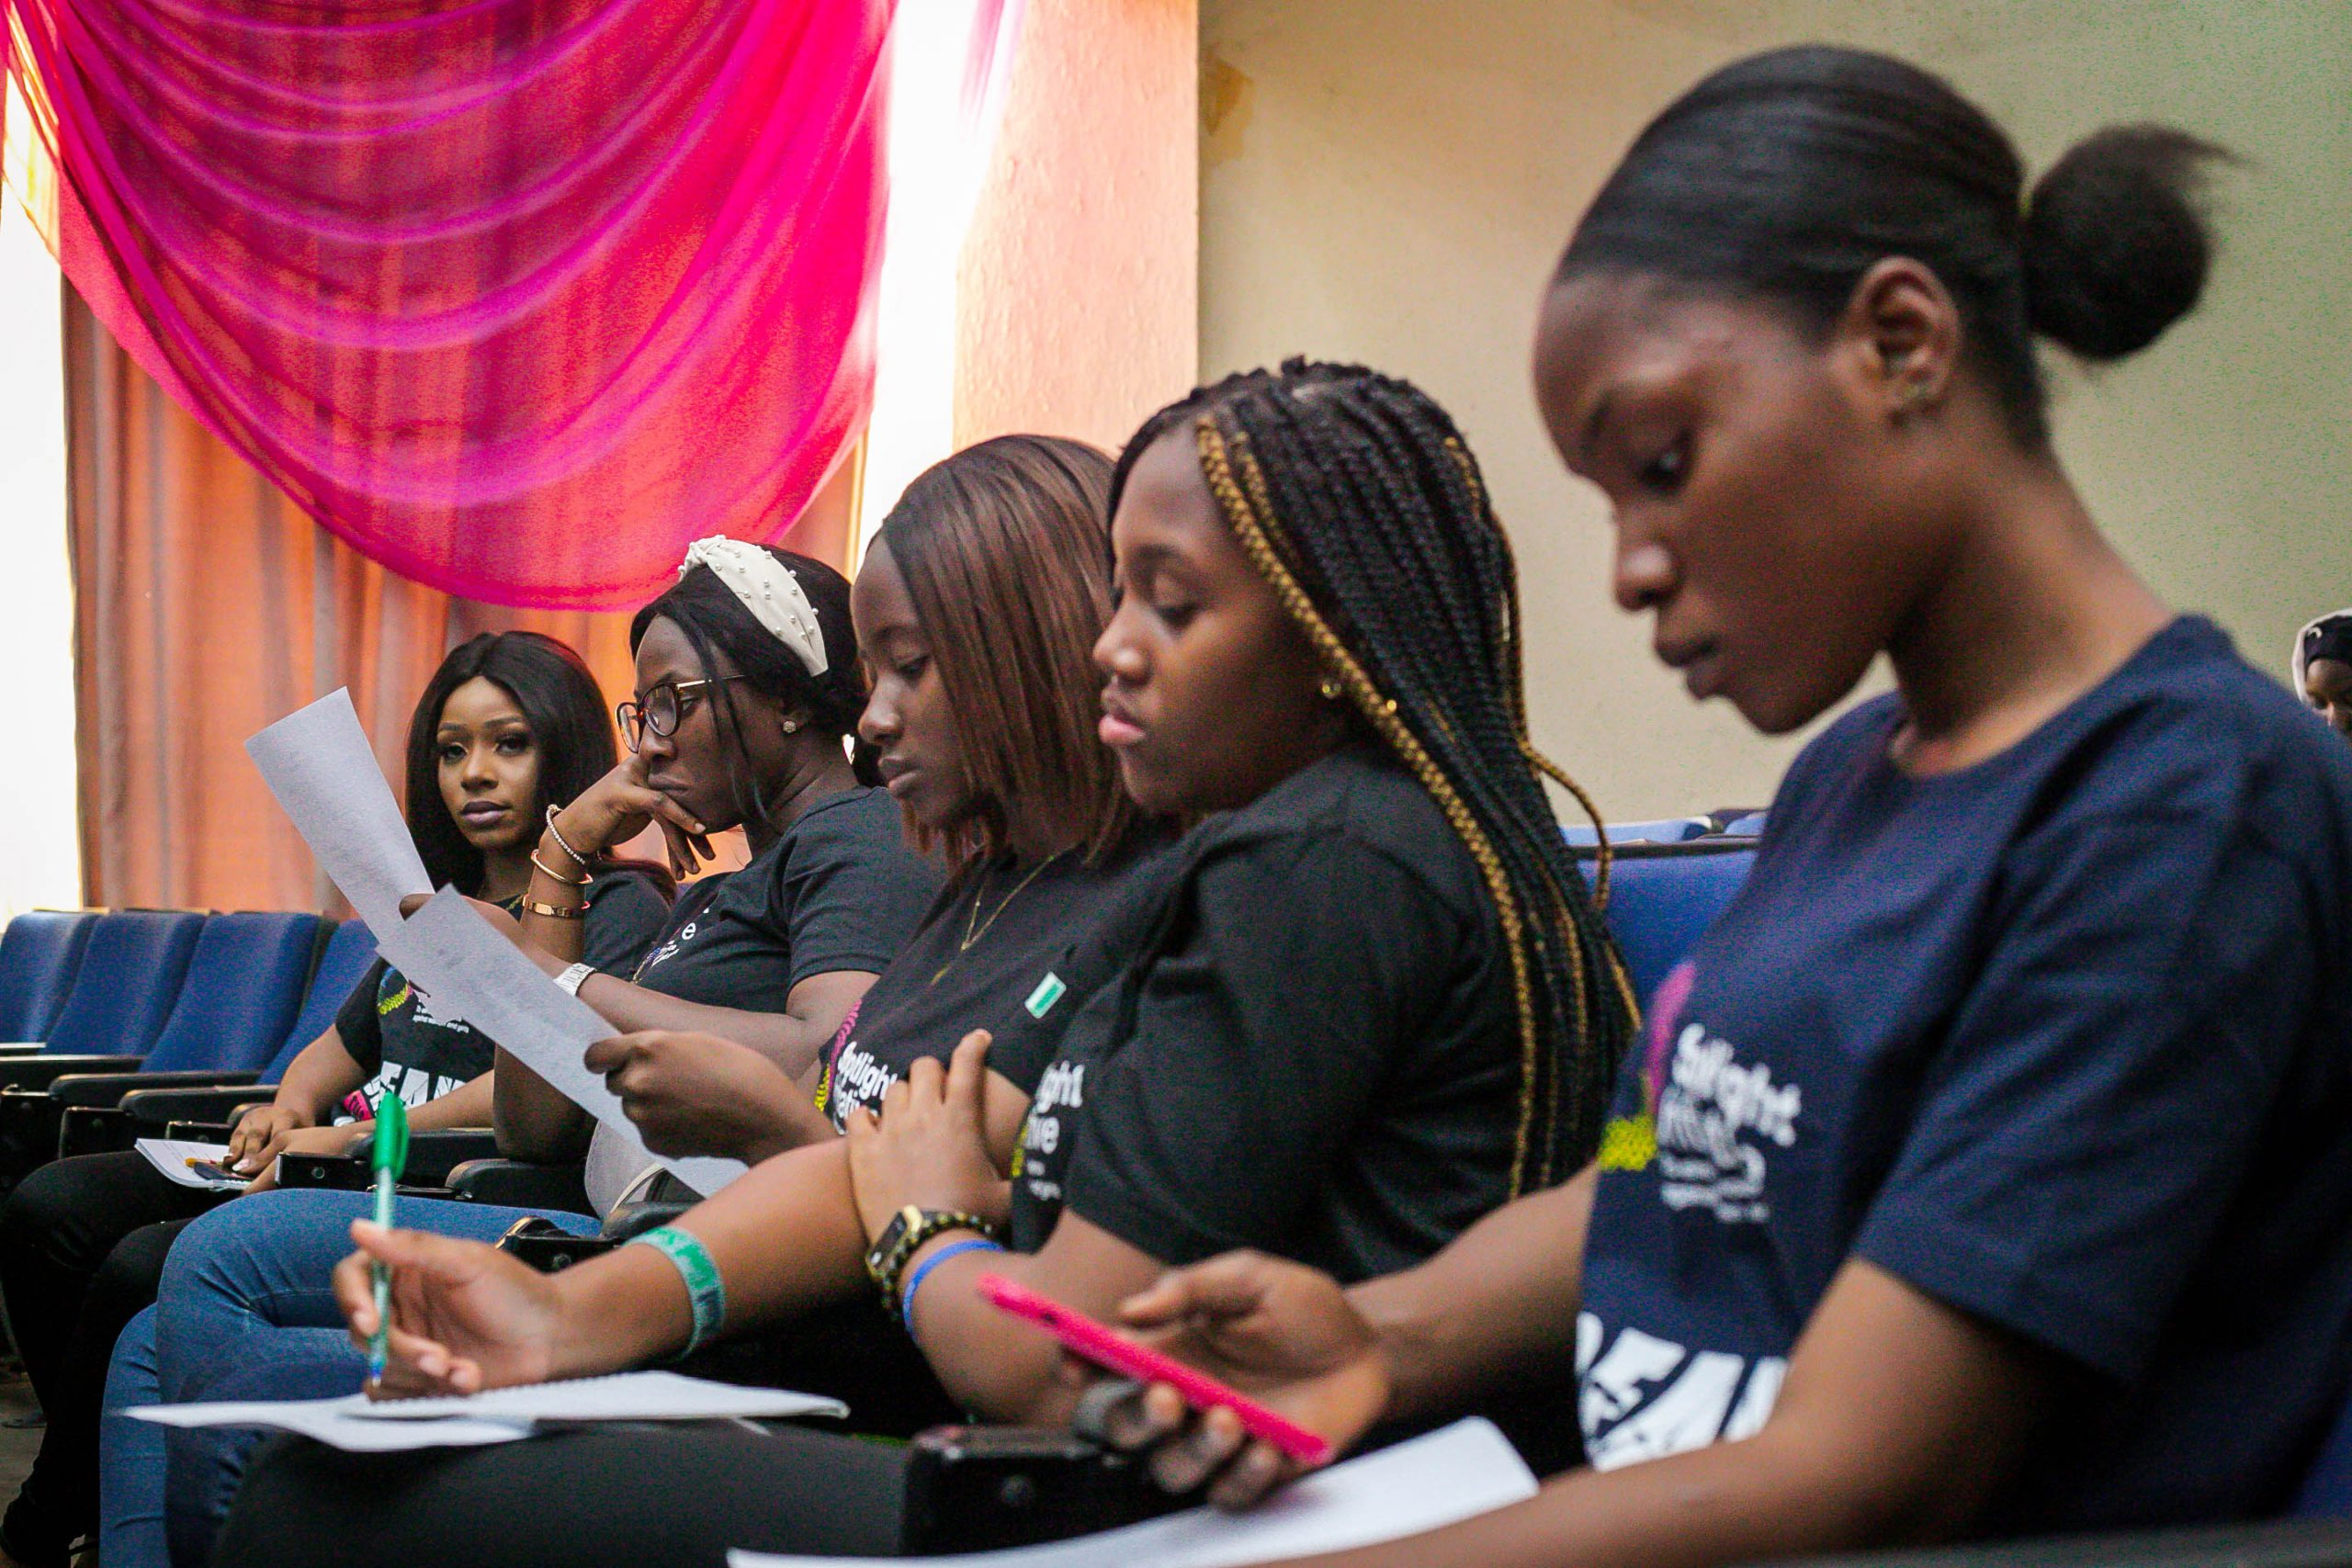 WARIF PARTNERS WITH JOINT EU-UN SPOTLIGHT INITIATIVE TO TRAIN STUDENTS ON GBV PREVENTION